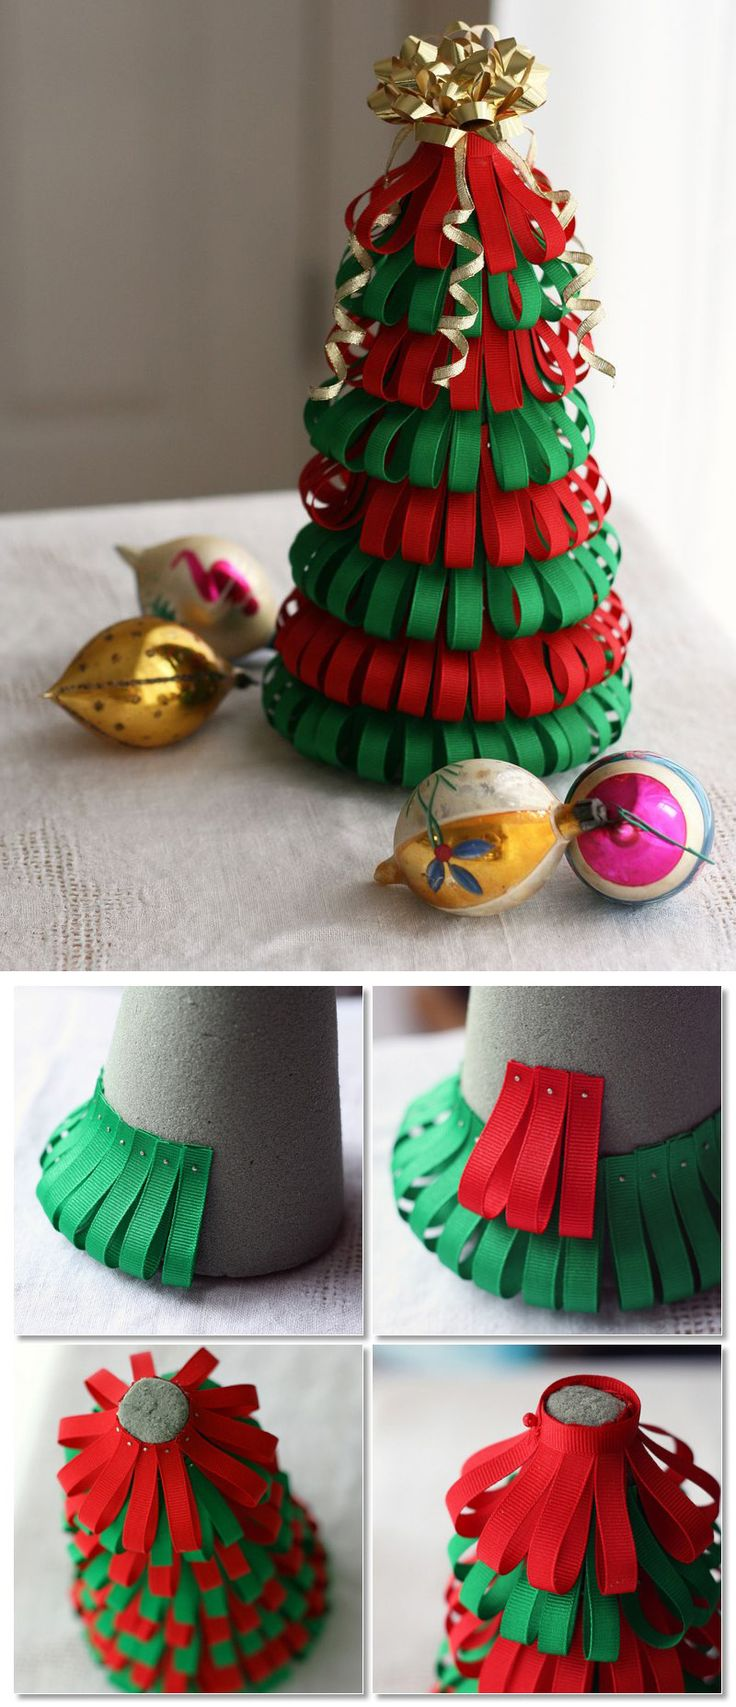 78+ ideas about Christmas Tree Ribbon on Pinterest | Christmas ...